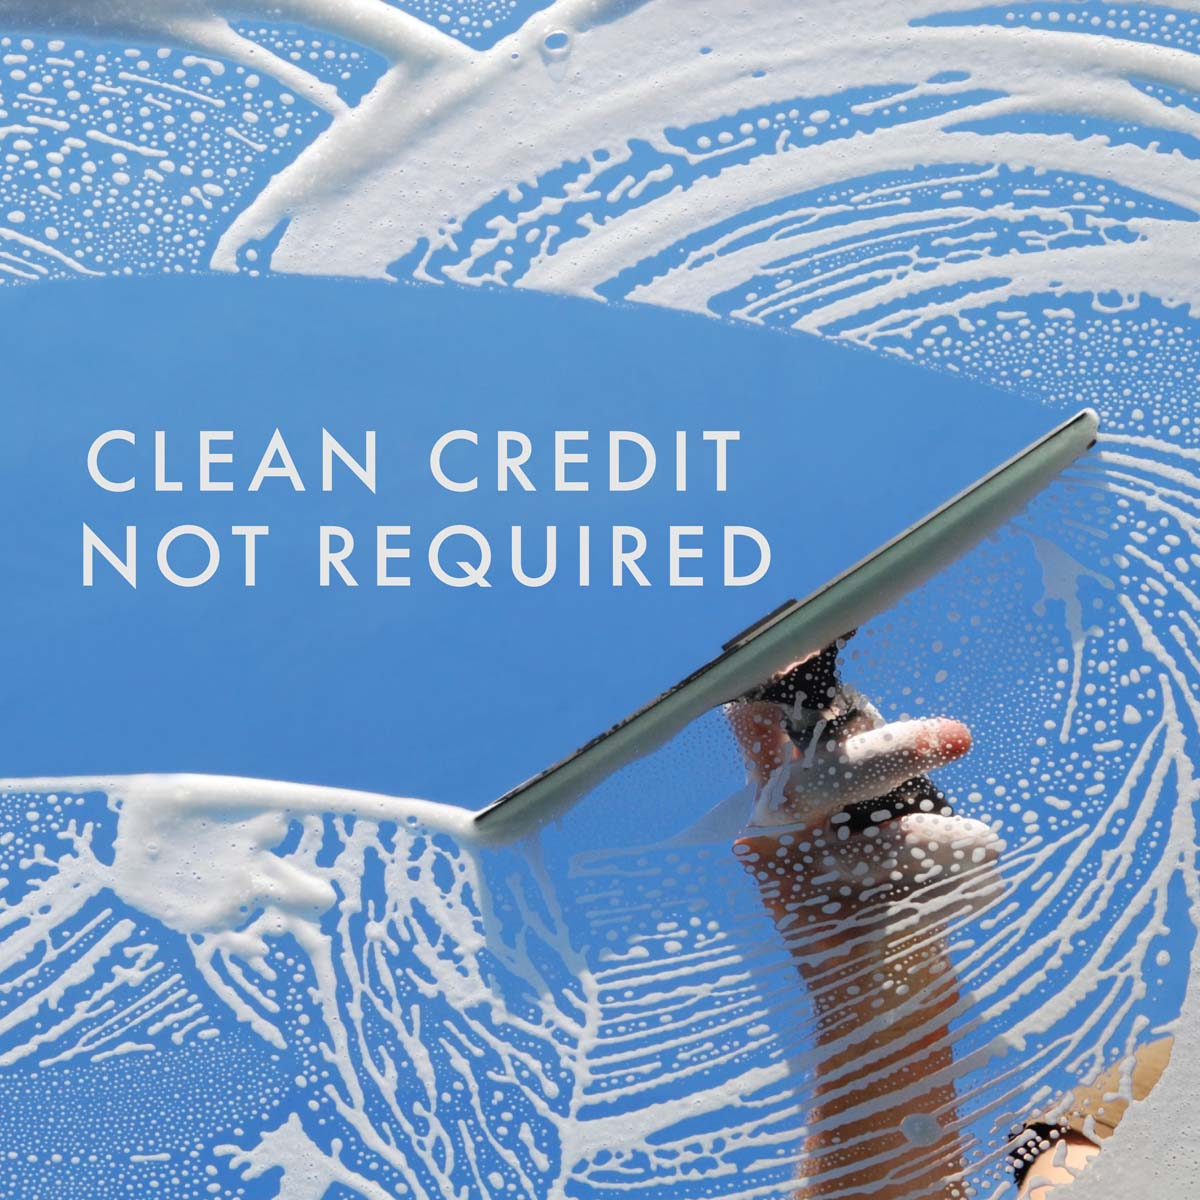 Think you need squeaky clean credit to buy a house? Think again. Contact me today to discuss your options.  #homebuyers #texasrealestate #realestateagents